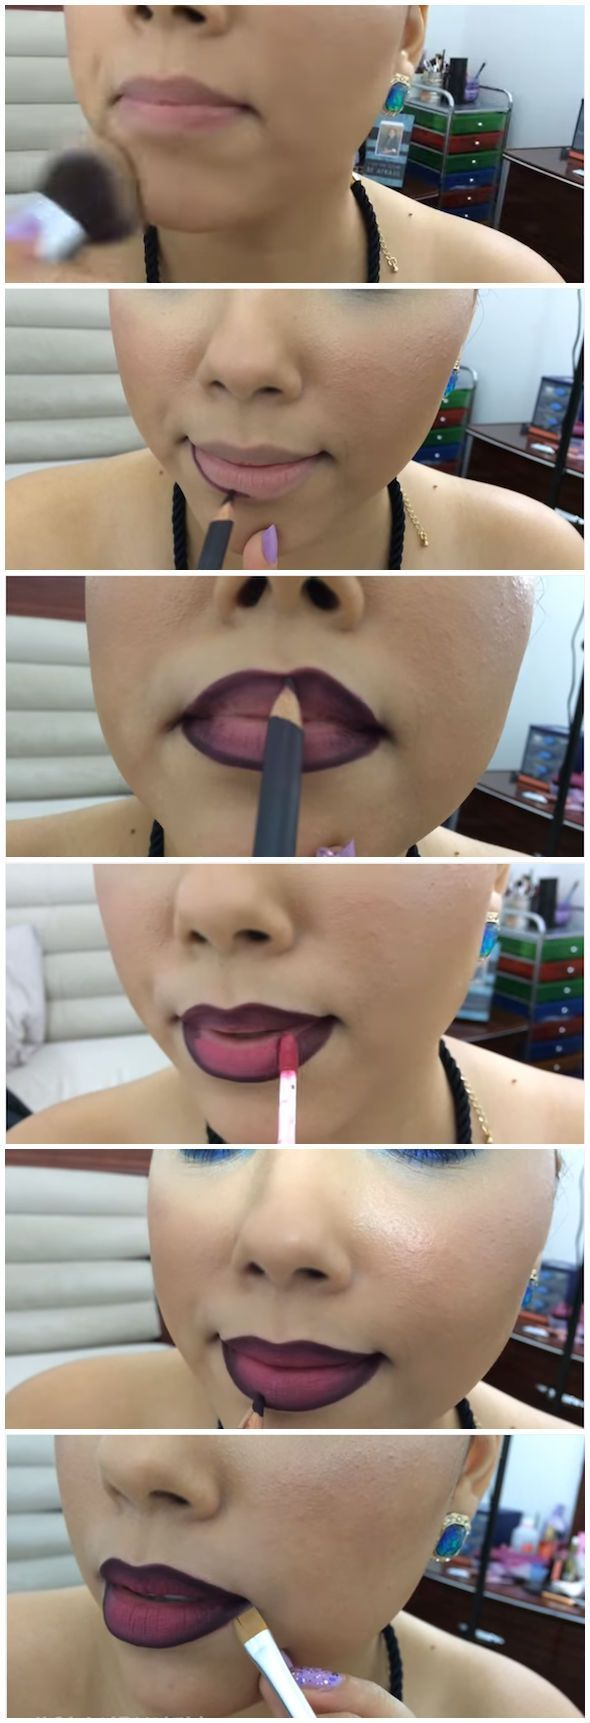 How To Do Ombre Lip |  How To Apply Lipstick And DIY Lipstick Tricks by Makeup Tutorials http://makeuptutorials.com/how-to-do-ombre-lip/